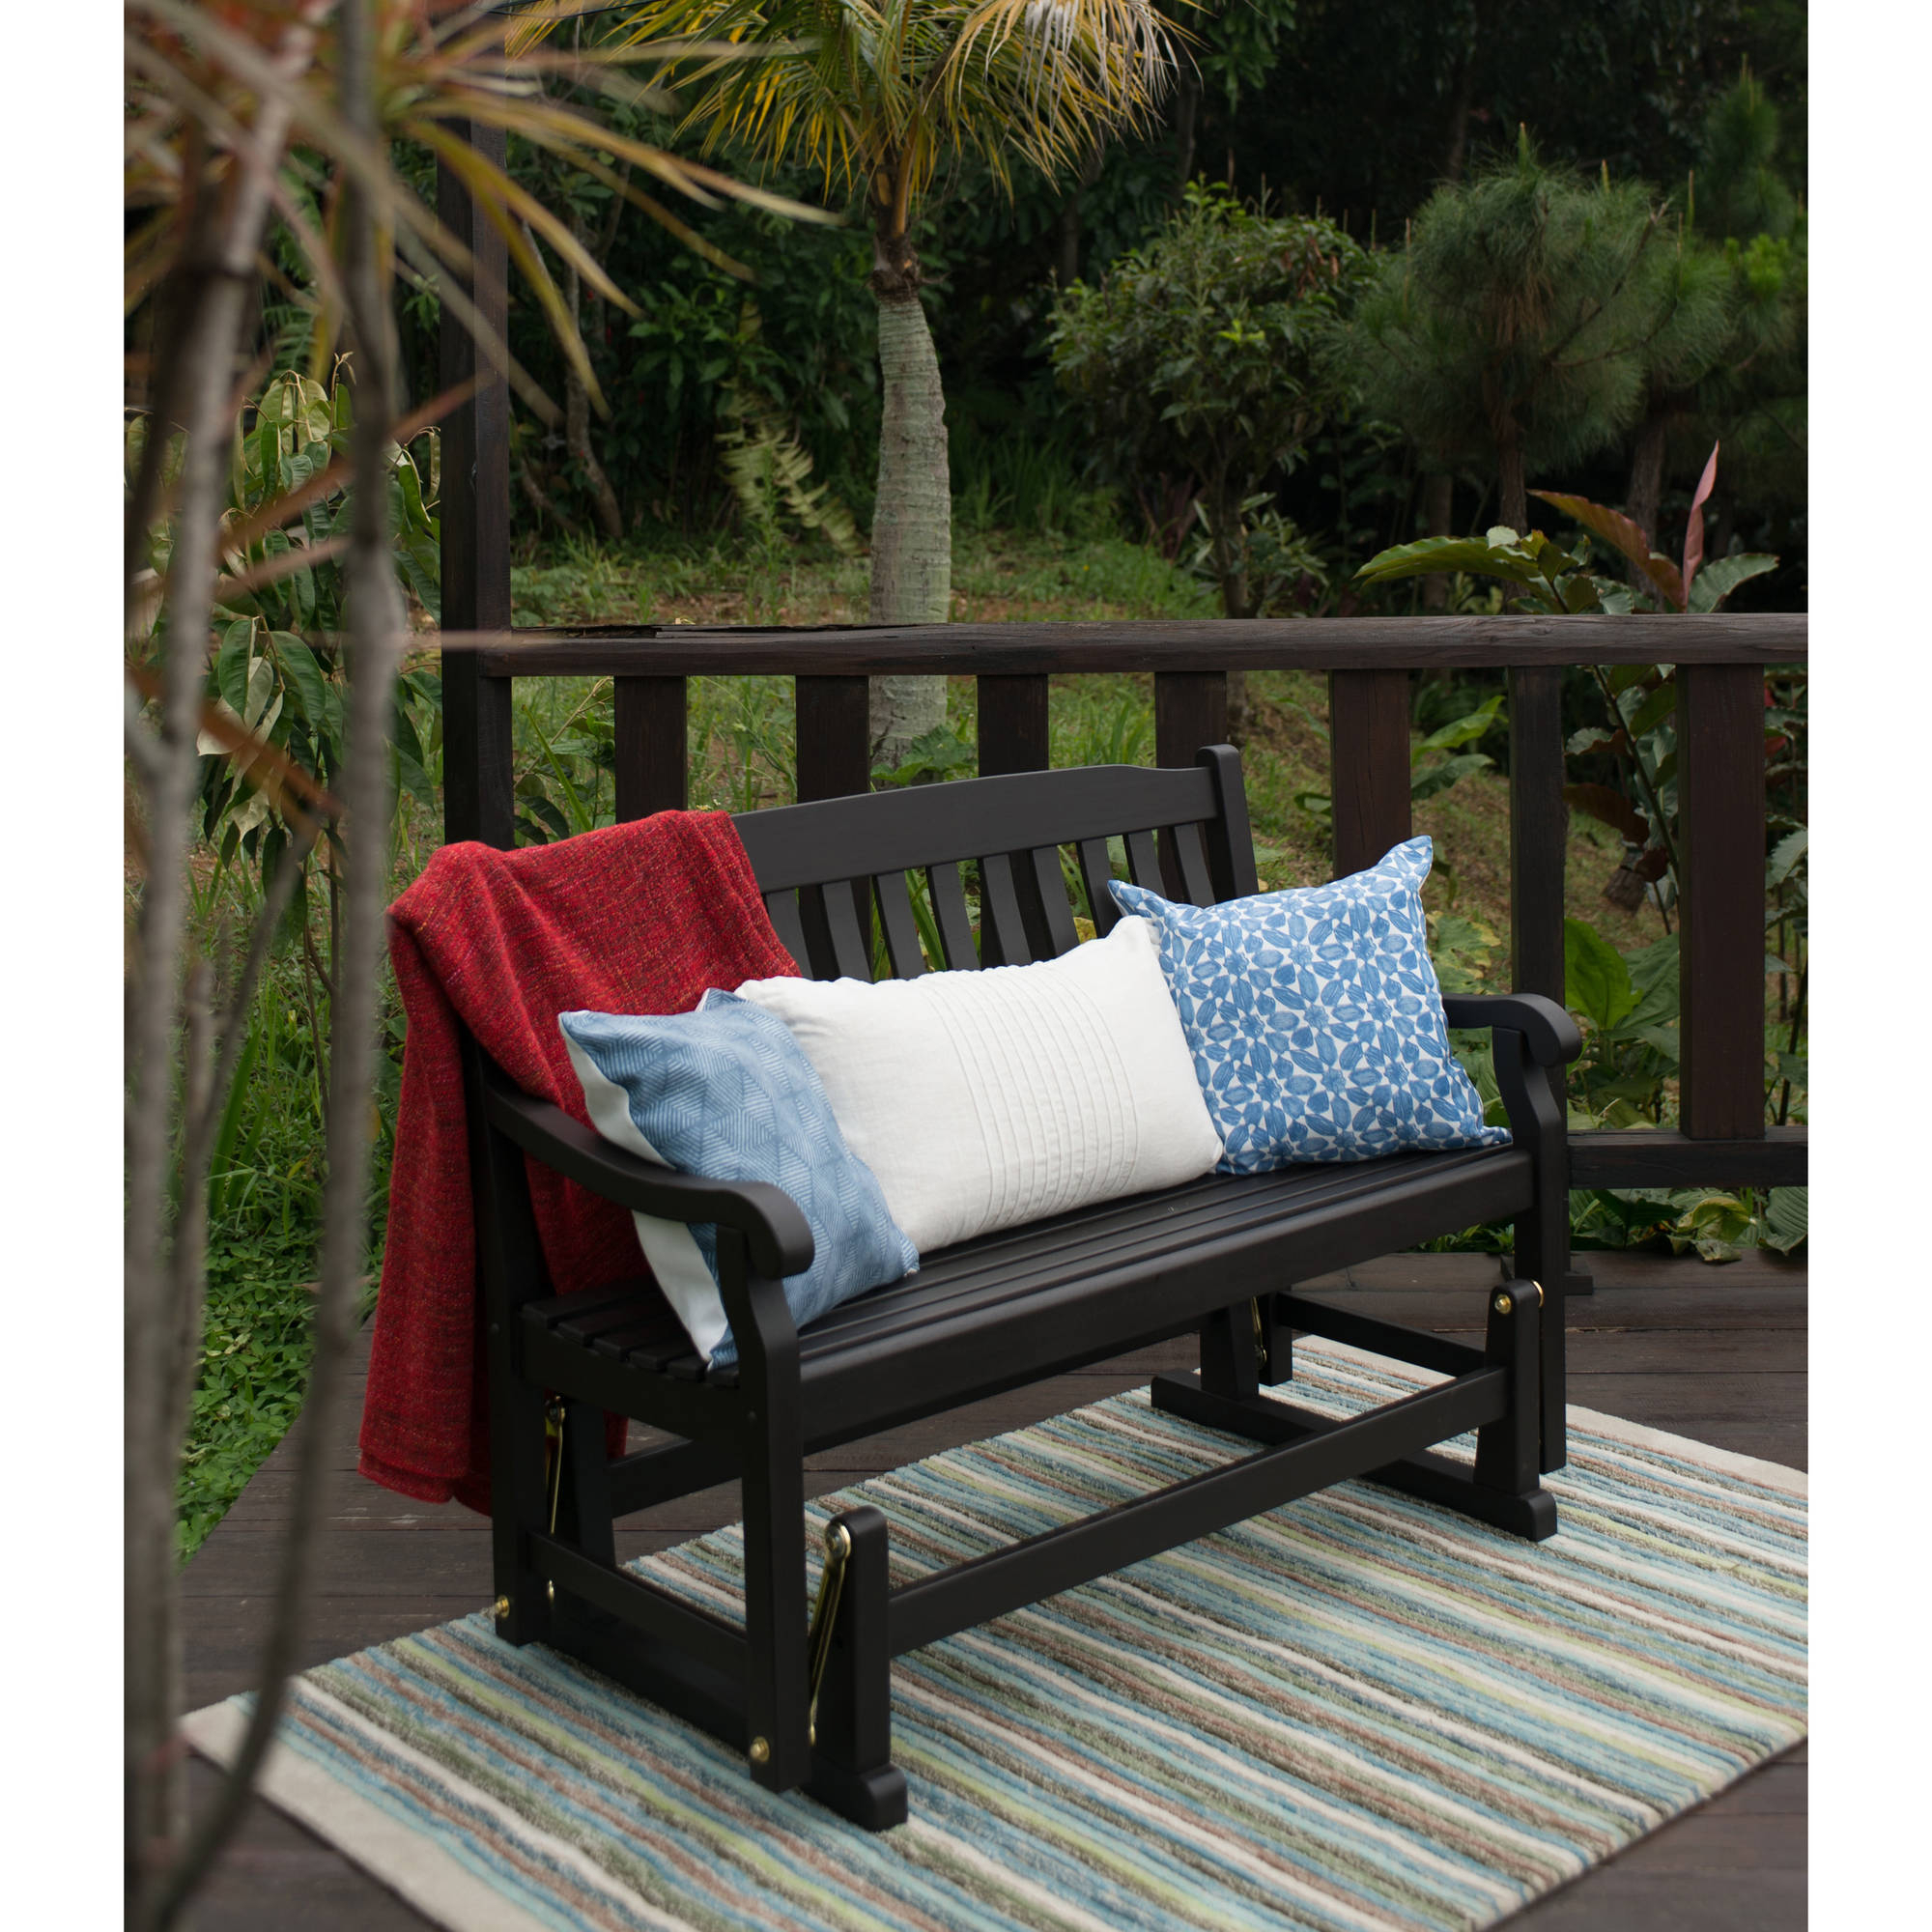 Better Homes & Gardens Delahey Outdoor Glider Bench, Dark Pertaining To Glider Benches With Cushion (View 16 of 25)